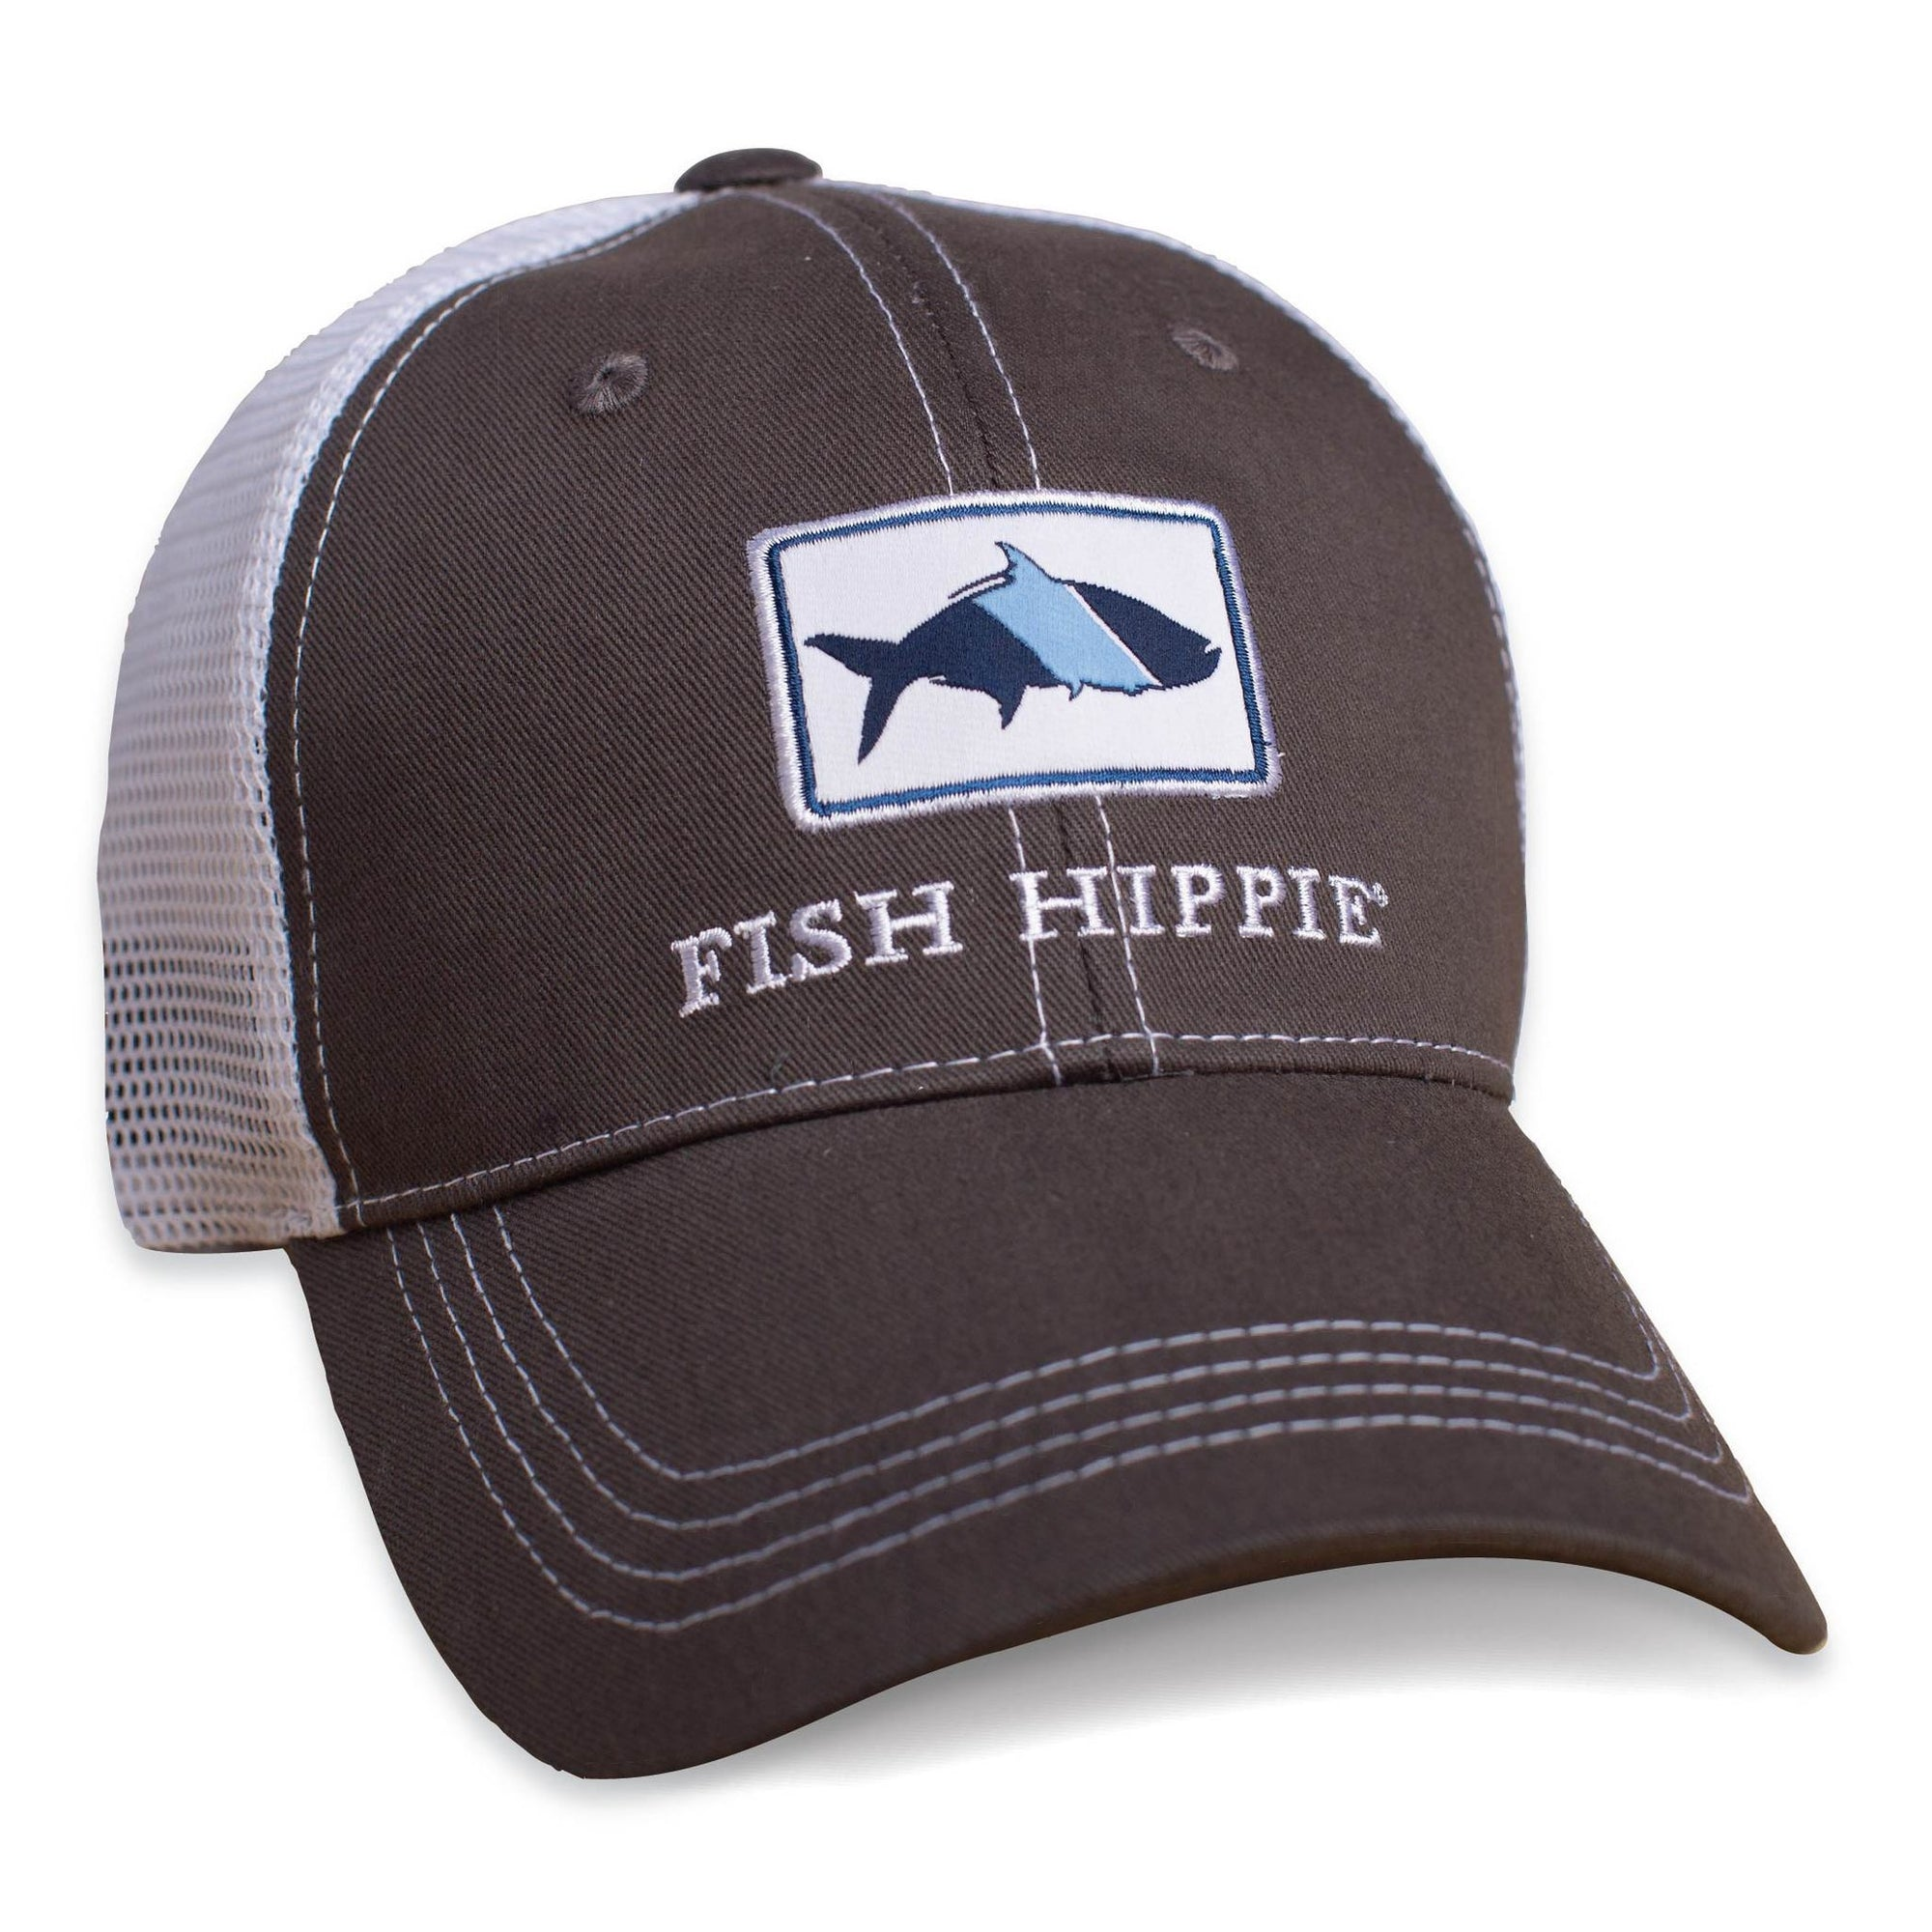 FISH HIPPIE Men's Hats NAVY / one size Fish Hippie Trucker Hat || David's Clothing FHH200N